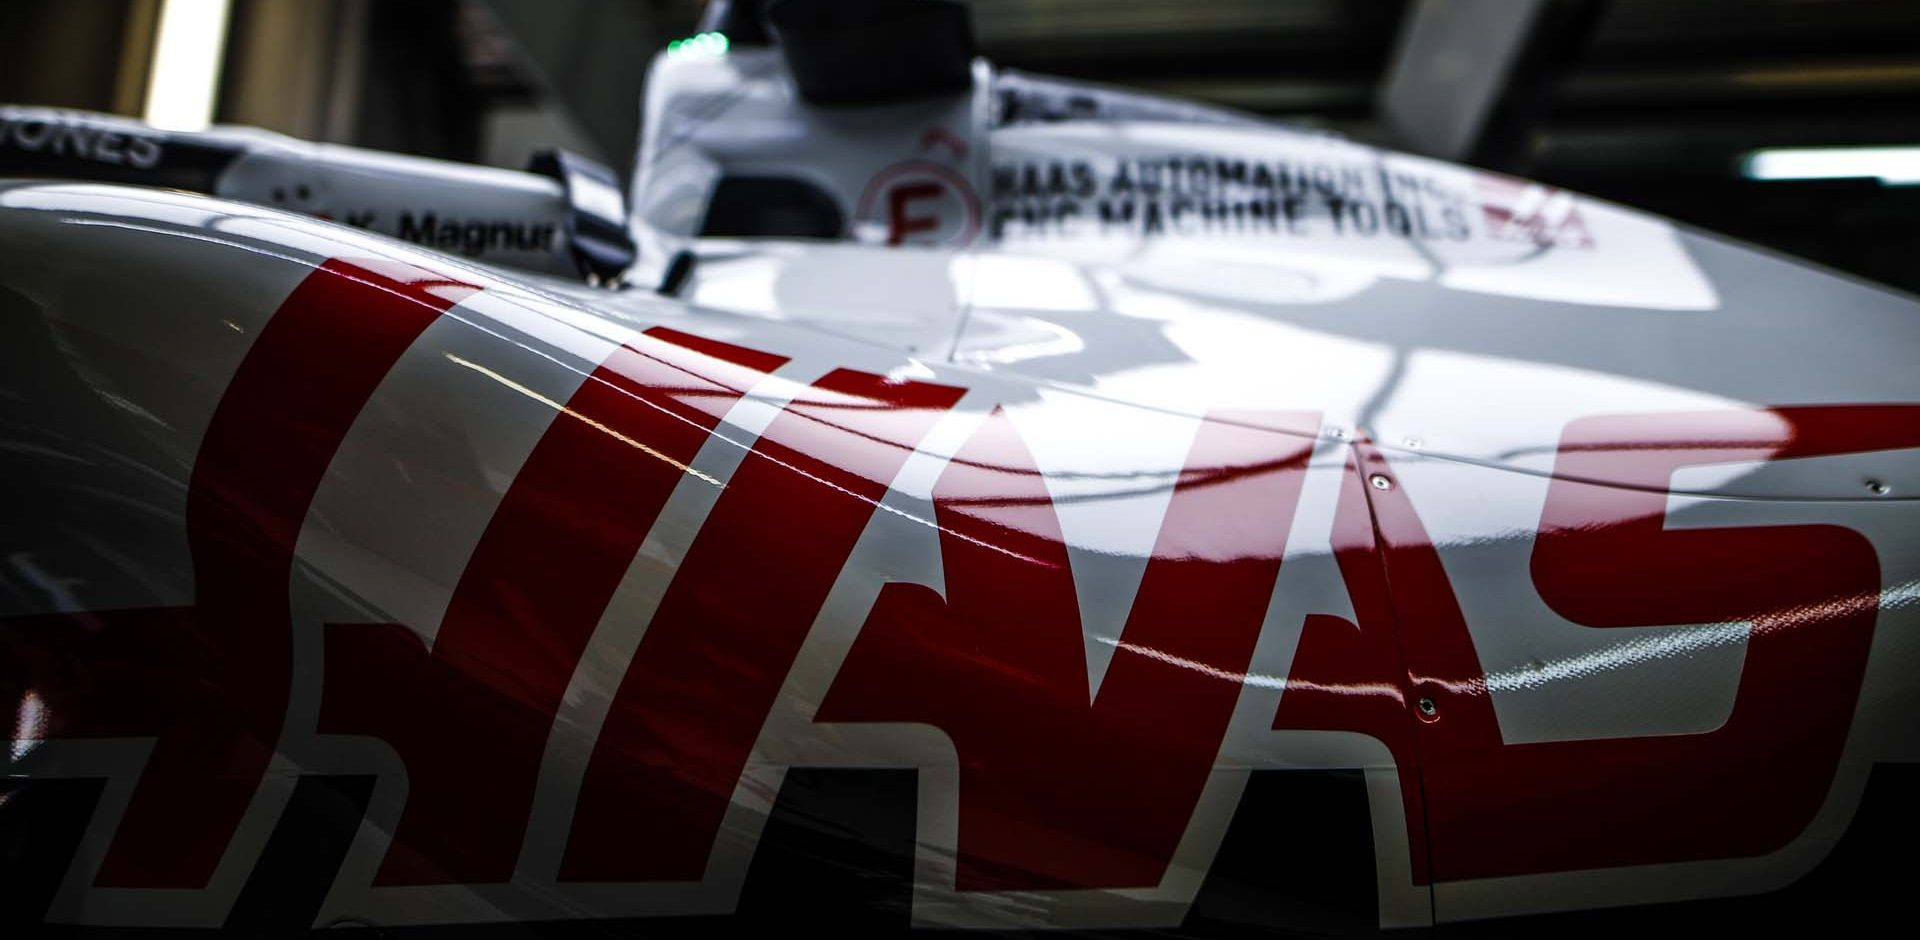 SOCHI AUTODROM, RUSSIAN FEDERATION - SEPTEMBER 24: Haas VF-20 during the Russian GP at Sochi Autodrom on Thursday September 24, 2020 in Sochi, Russian Federation. (Photo by Andy Hone / LAT Images) Haas logo